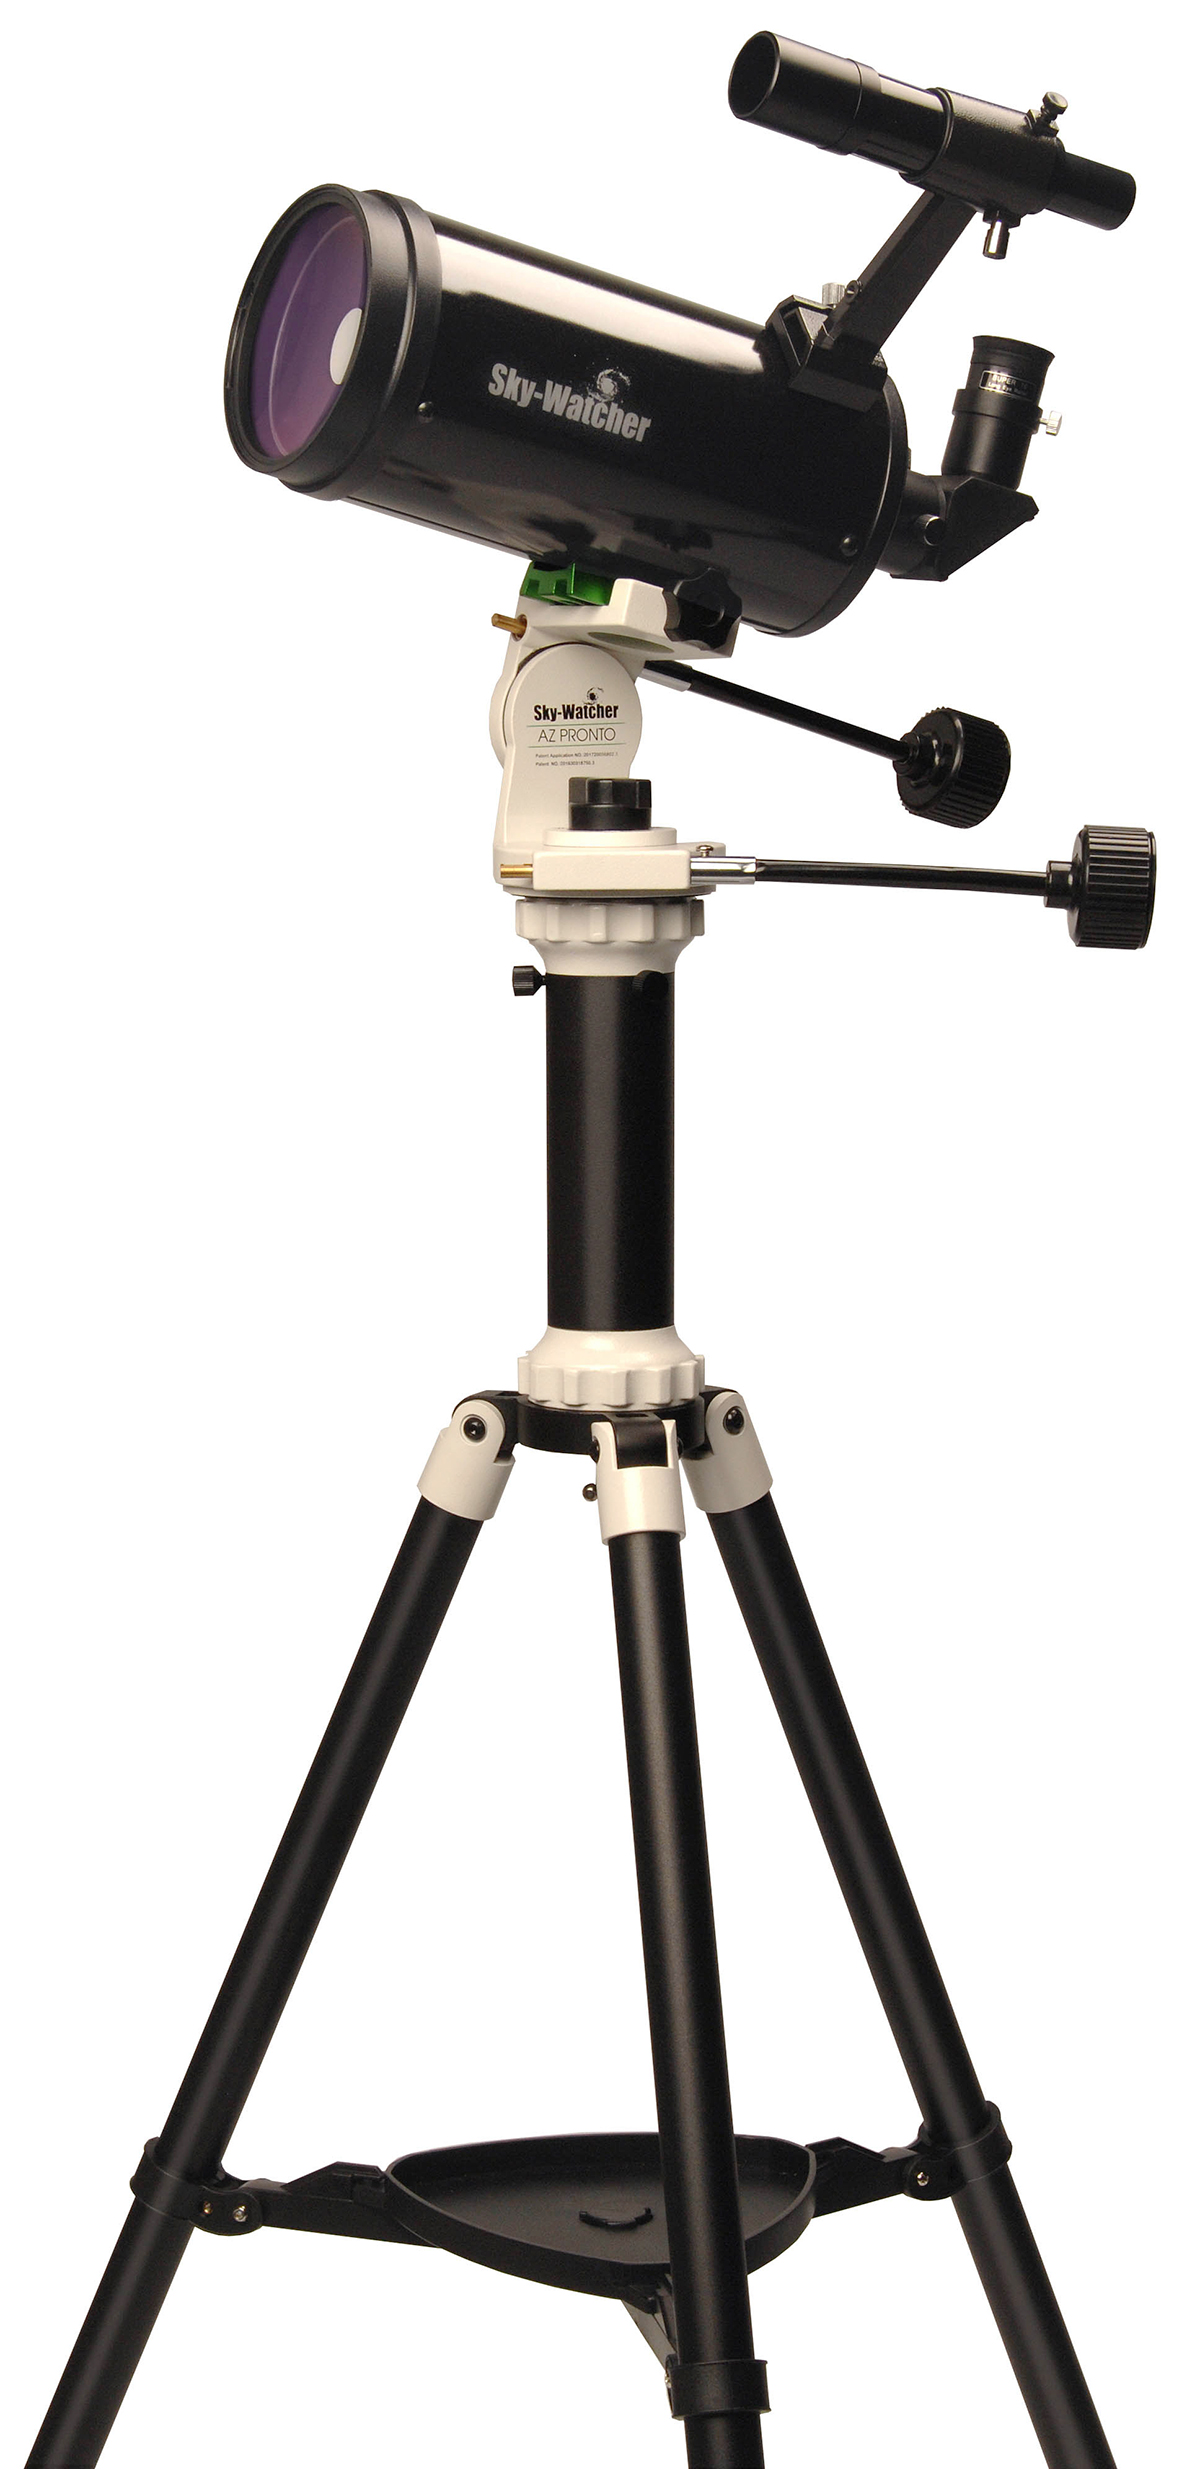 Skywatcher Tripod Telescope Mount AZ Pronto with Tripod and Extension Column and SKYMAX 102/ Maksutov Cassegrain Telescope